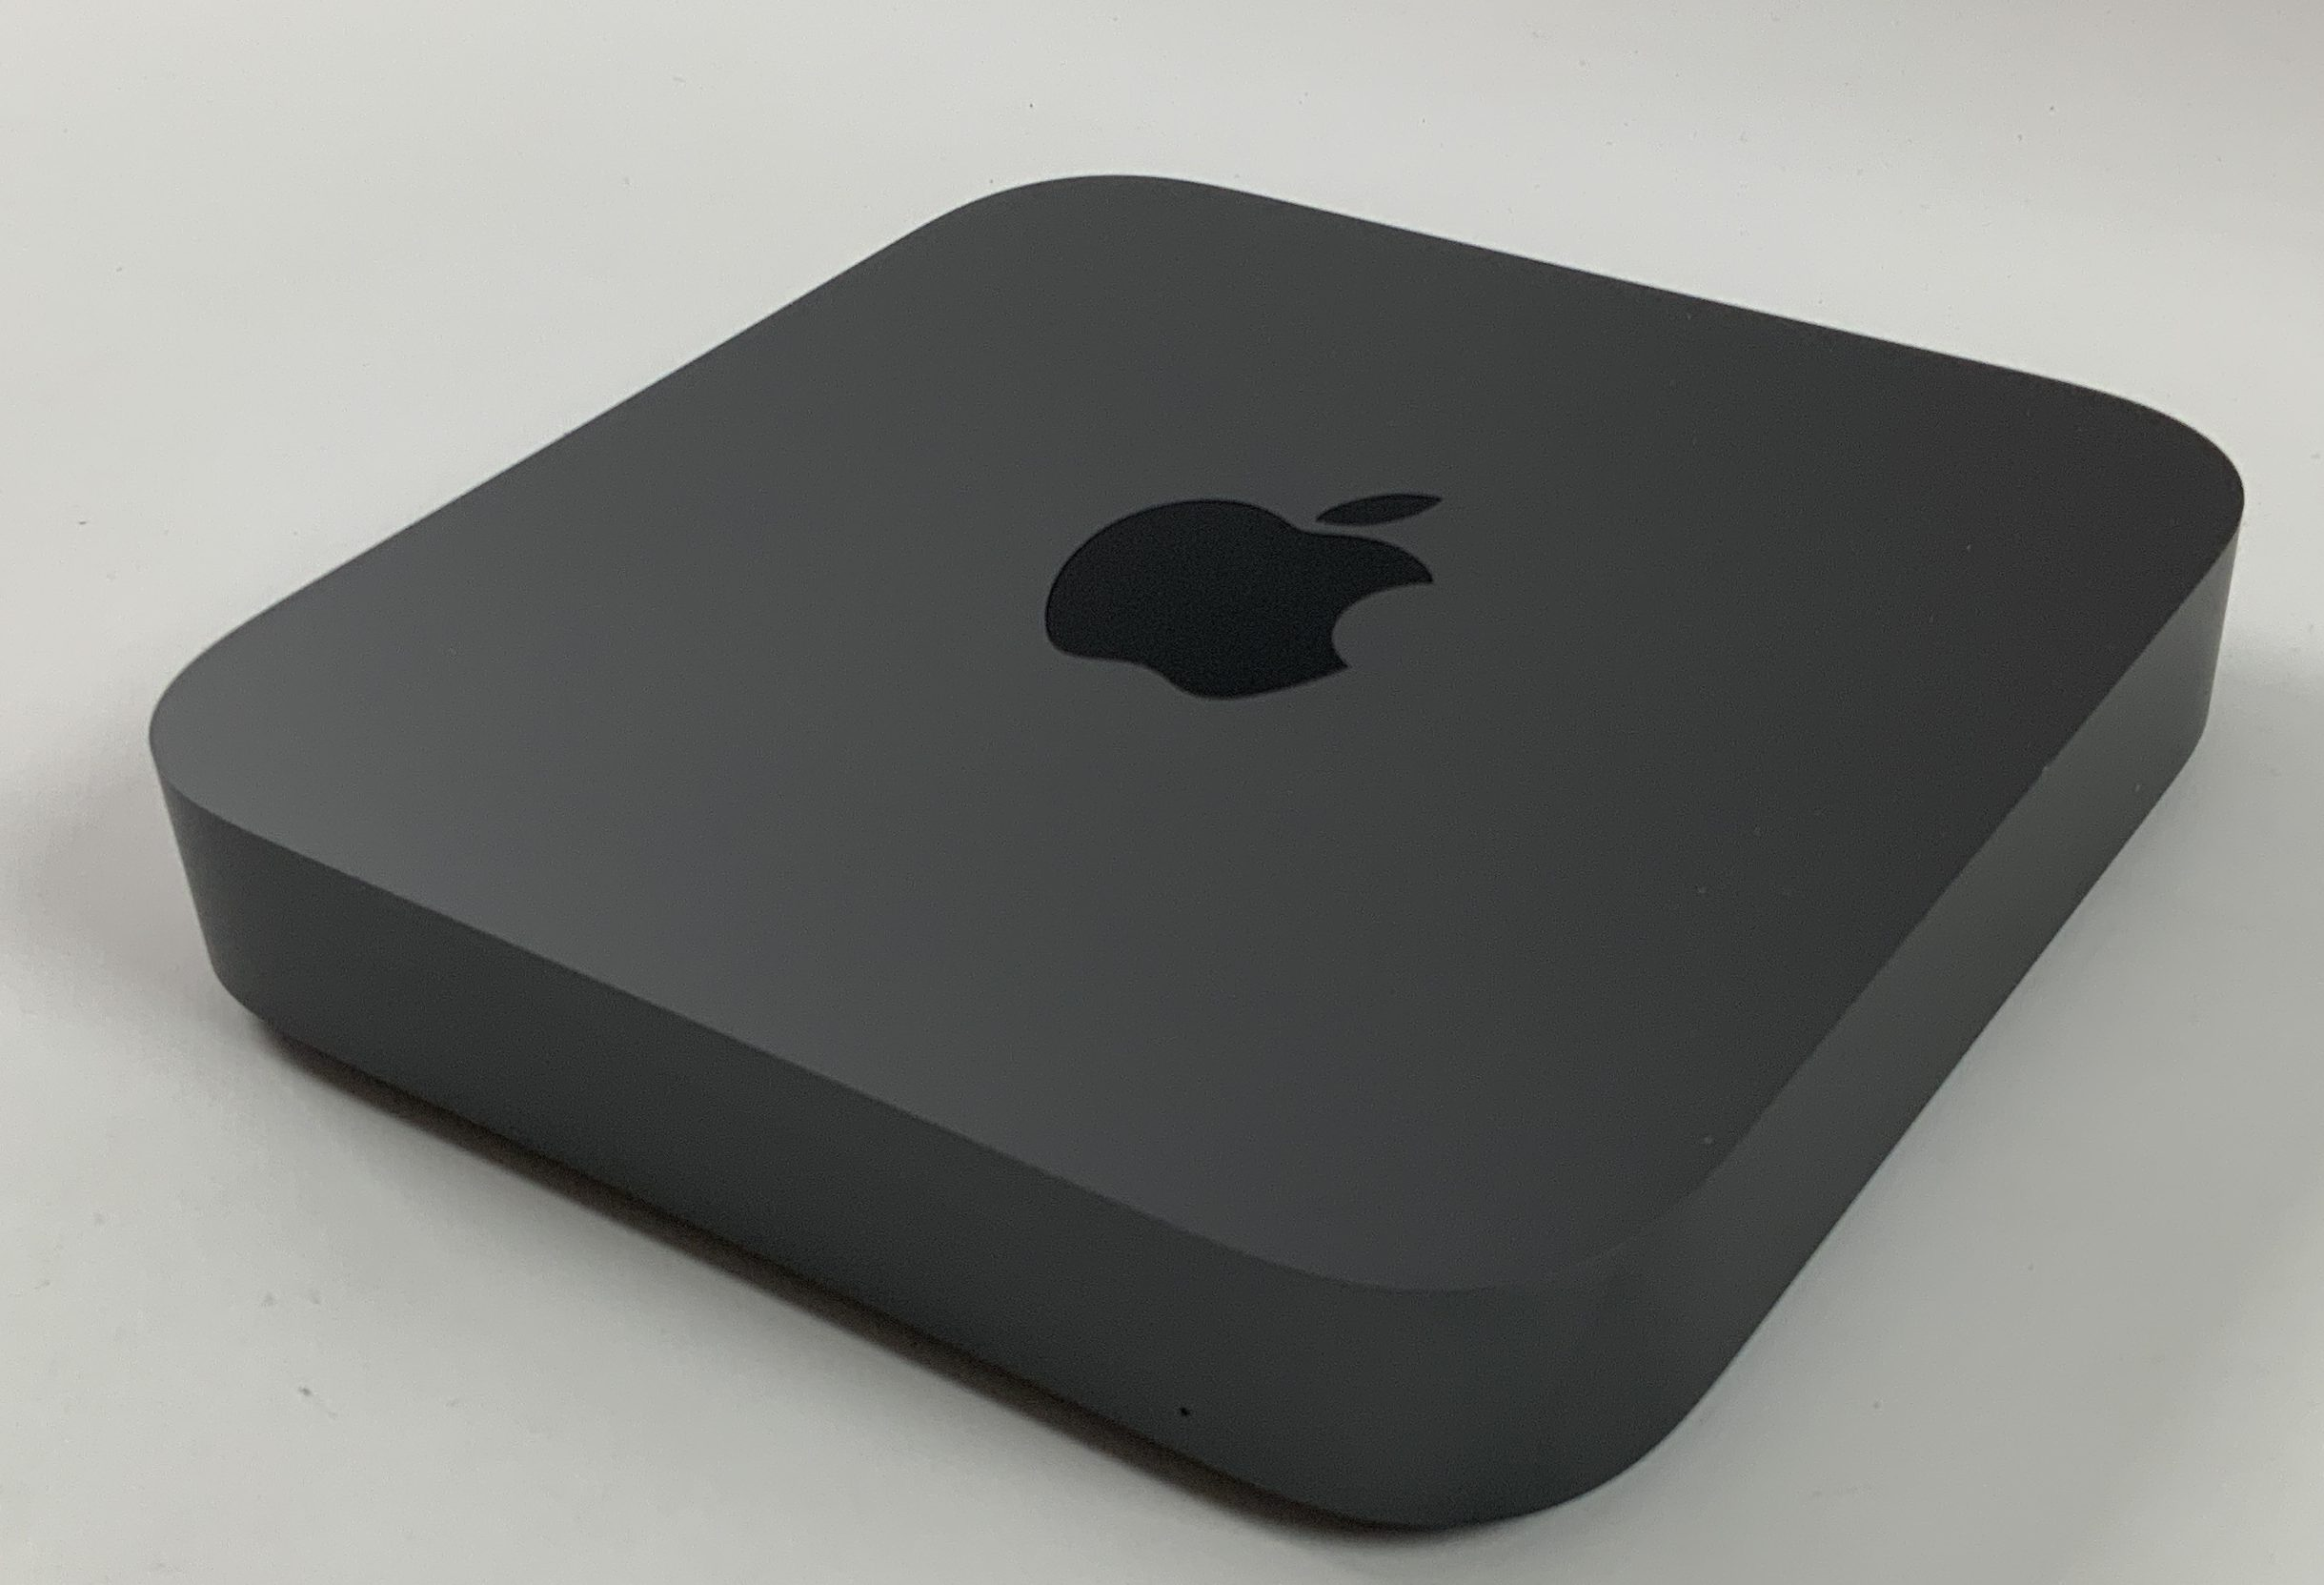 Mac Mini Late 2018 (Intel 6-Core i5 3.0 GHz 32 GB RAM 256 GB SSD), Intel 6-Core i5 3.0 GHz, 32 GB RAM, 256 GB SSD, Kuva 1